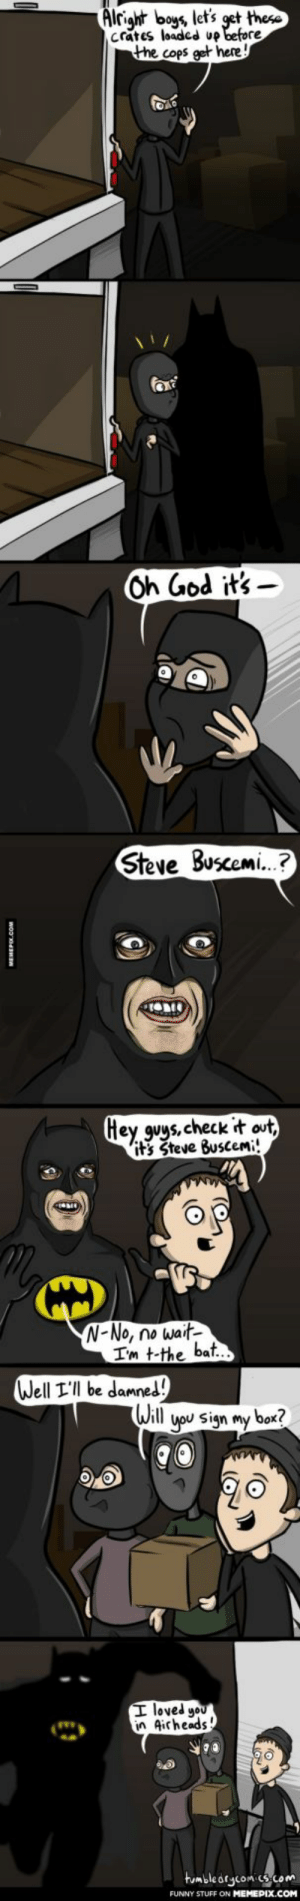 Foiled Again!omg-humor.tumblr.com: Alright boys, let's get these  crates loaded up before  the cops get here!  Oh God it's -  Steve Buscemi.?  Hey guys, check it out,  it's Steve Buscemi!  N-No, no wait-  I'm t-the bat..  Well I'll be damned!  Will  you sign my box?  I loved you  in Airheads!  tumblearycomics.com  FUNNY STUFF ON MEMEPIX.COM  MEHEPI.COM Foiled Again!omg-humor.tumblr.com